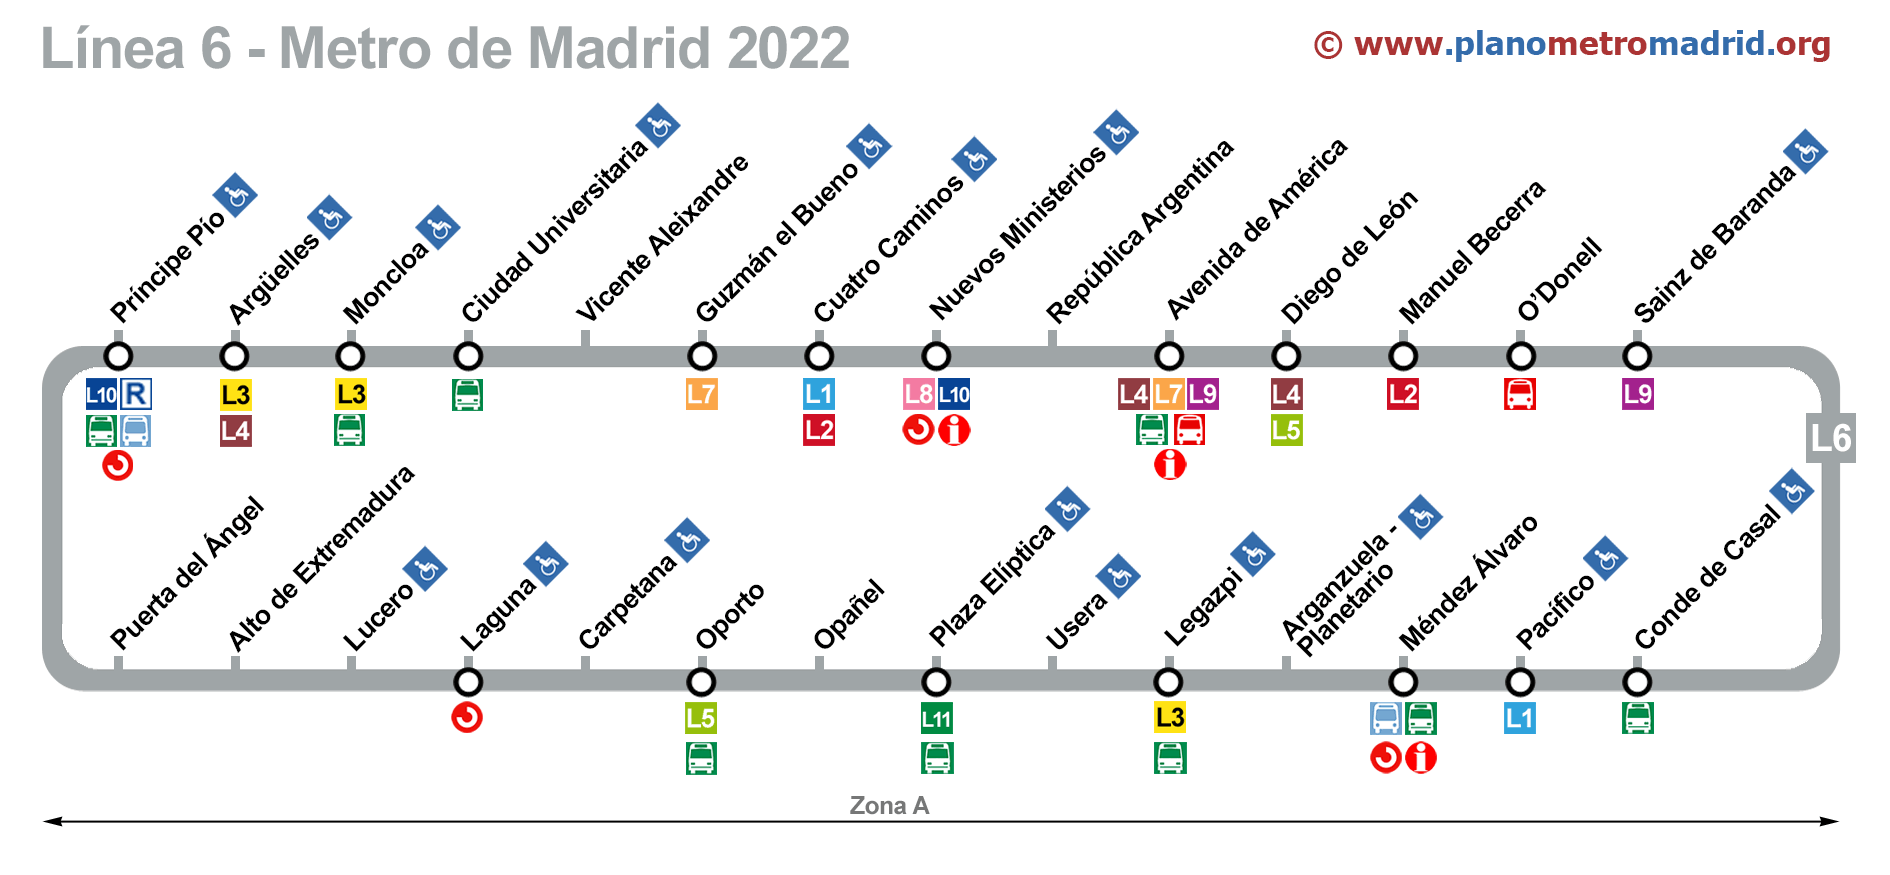 madrid metro and line The metro is the fastest, most efficient and reliable way of getting around madrid it is one of the largest metropolitan networks in europe, connecting the entire city and a large part of the suburbs boasting over 300 stations, the madrid metro currently comprises twelve metro lines, three metro ligero tram lines and a special ramal line.